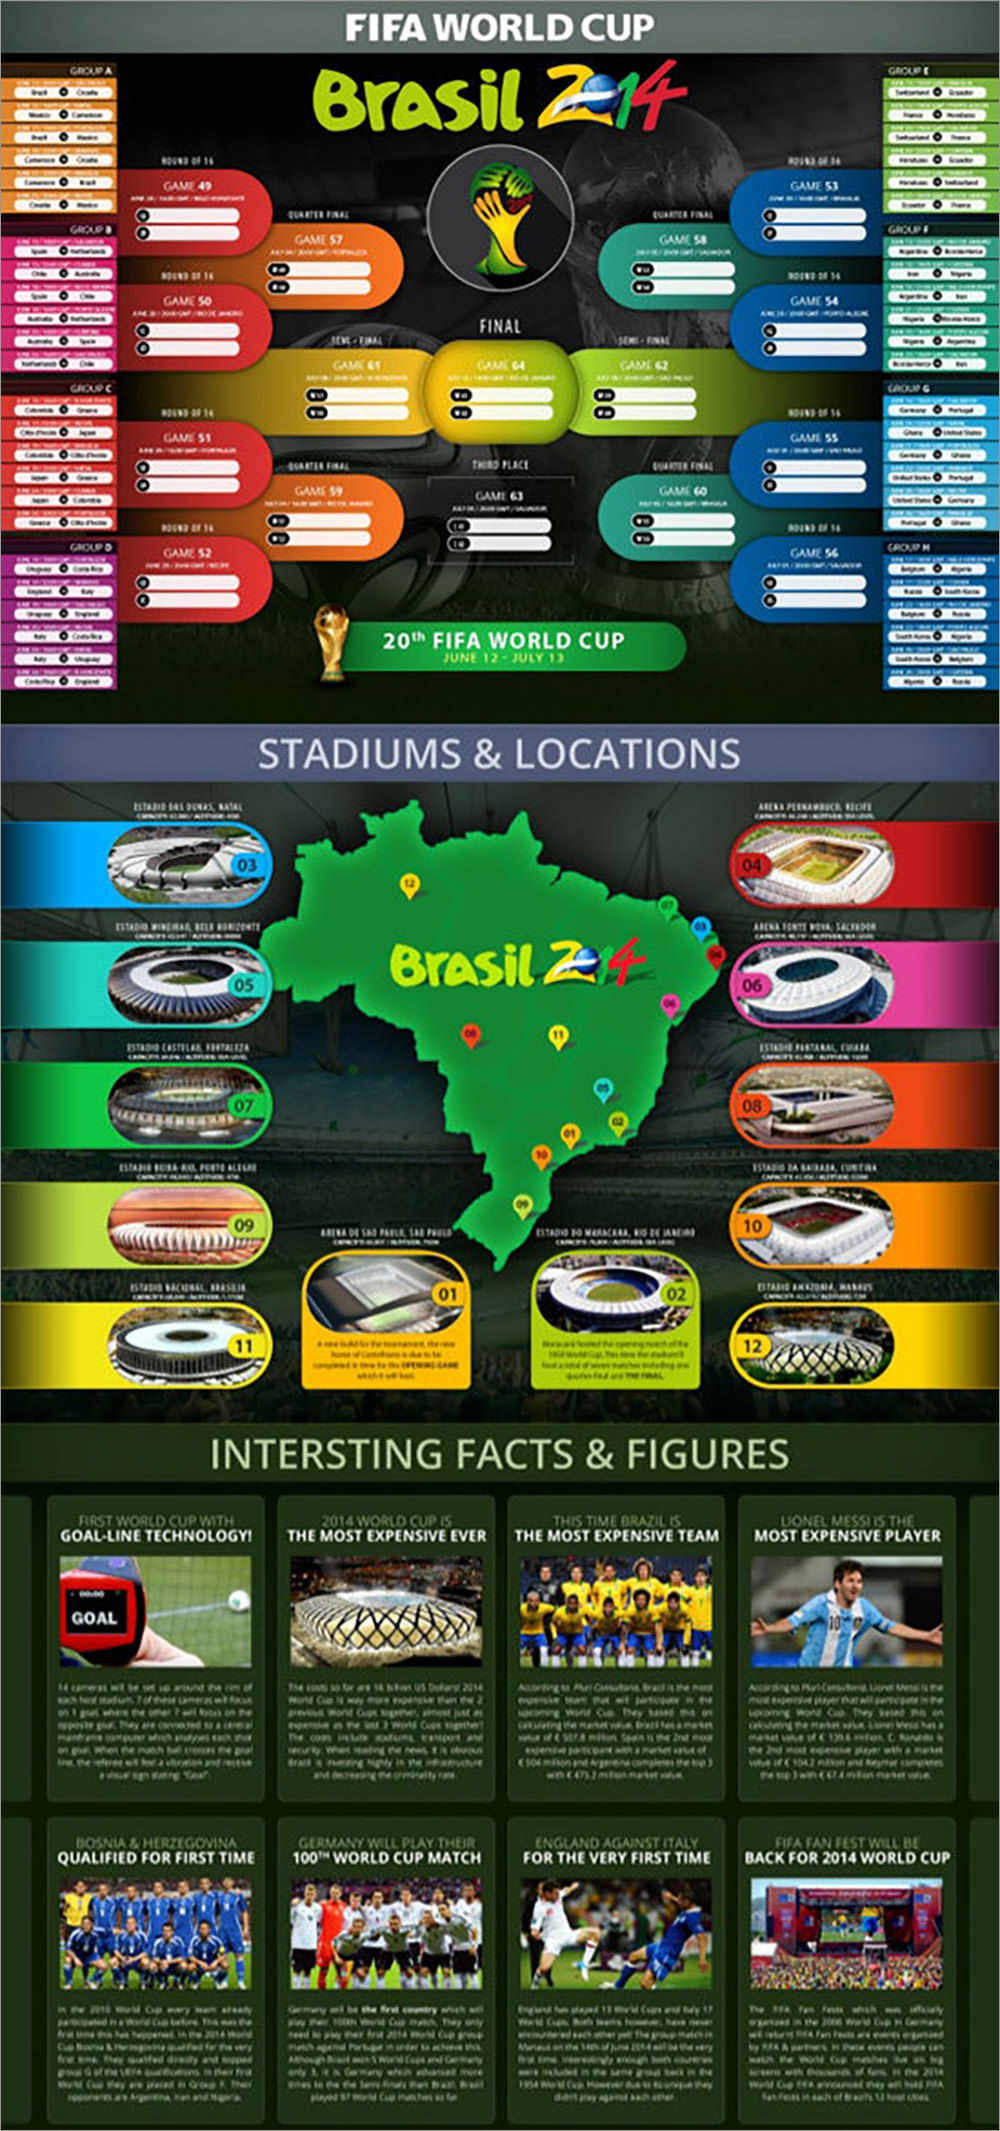 FIFA World Cup 2014 Brazil Infographic Poster